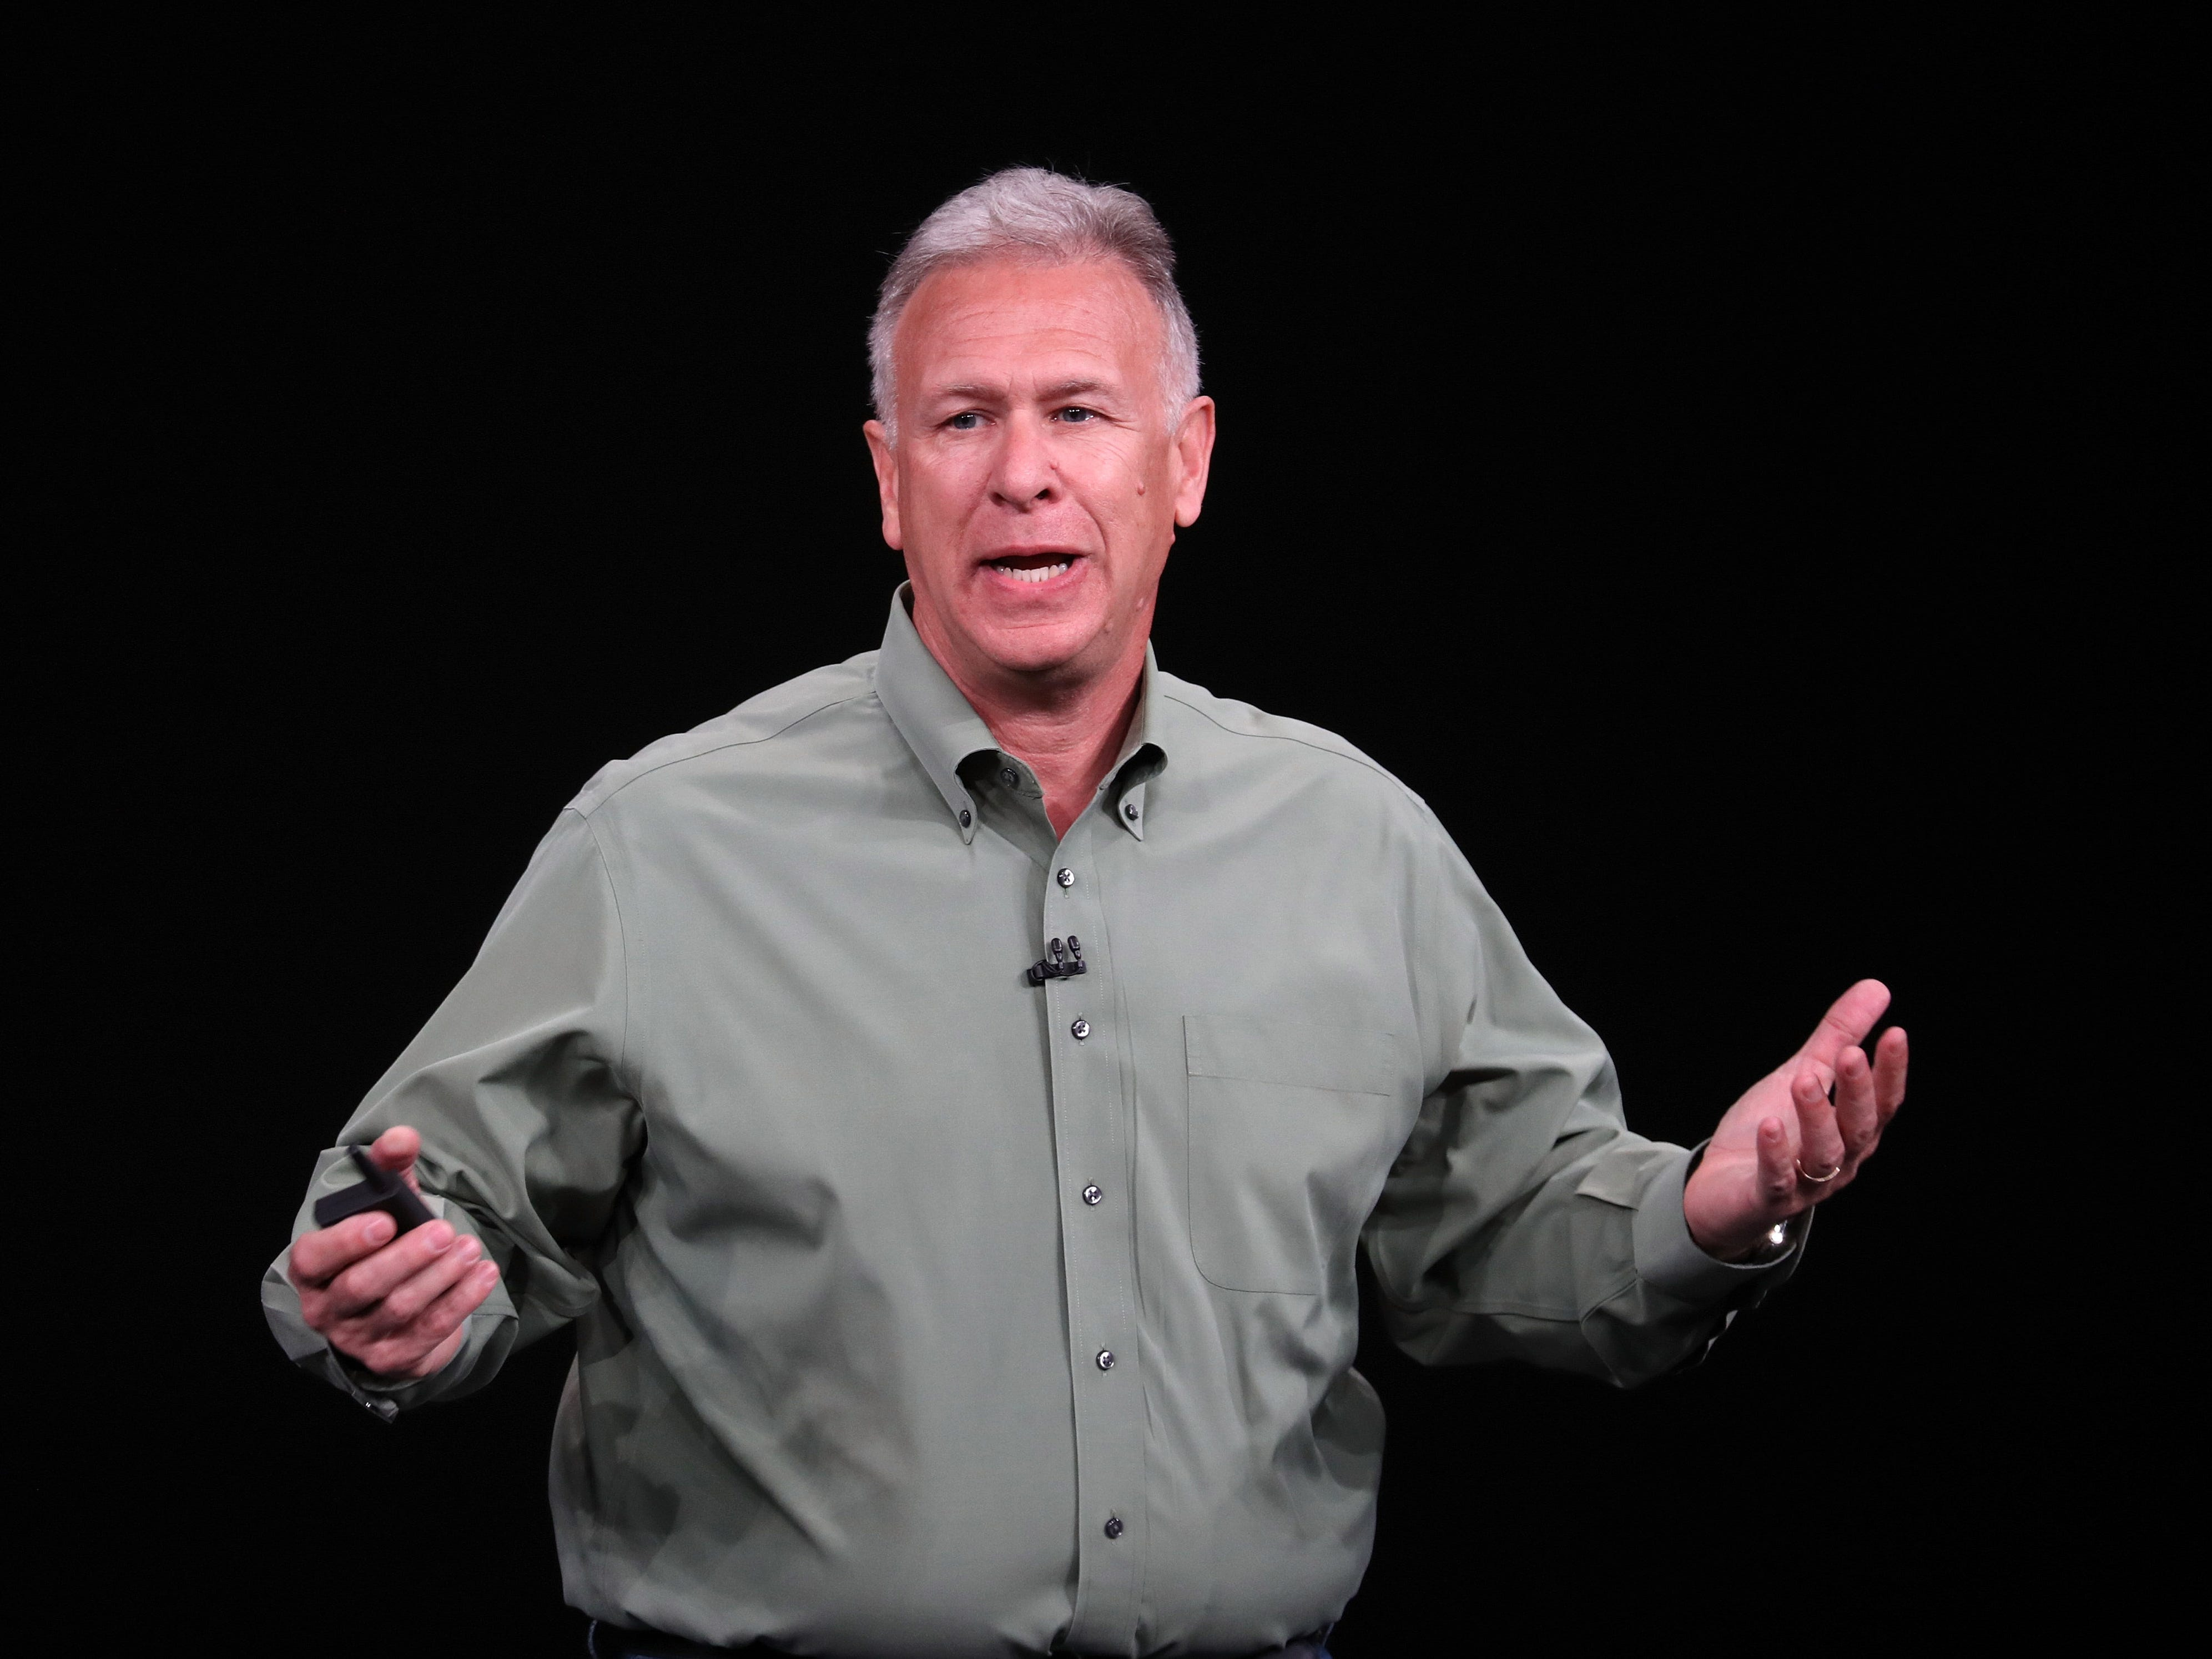 Phil Schiller, senior vice president of worldwide marketing at Apple Inc., speaks at an Apple event  at the Steve Jobs Theater at Apple Park on Sept. 12, 2018 in Cupertino, Calif.